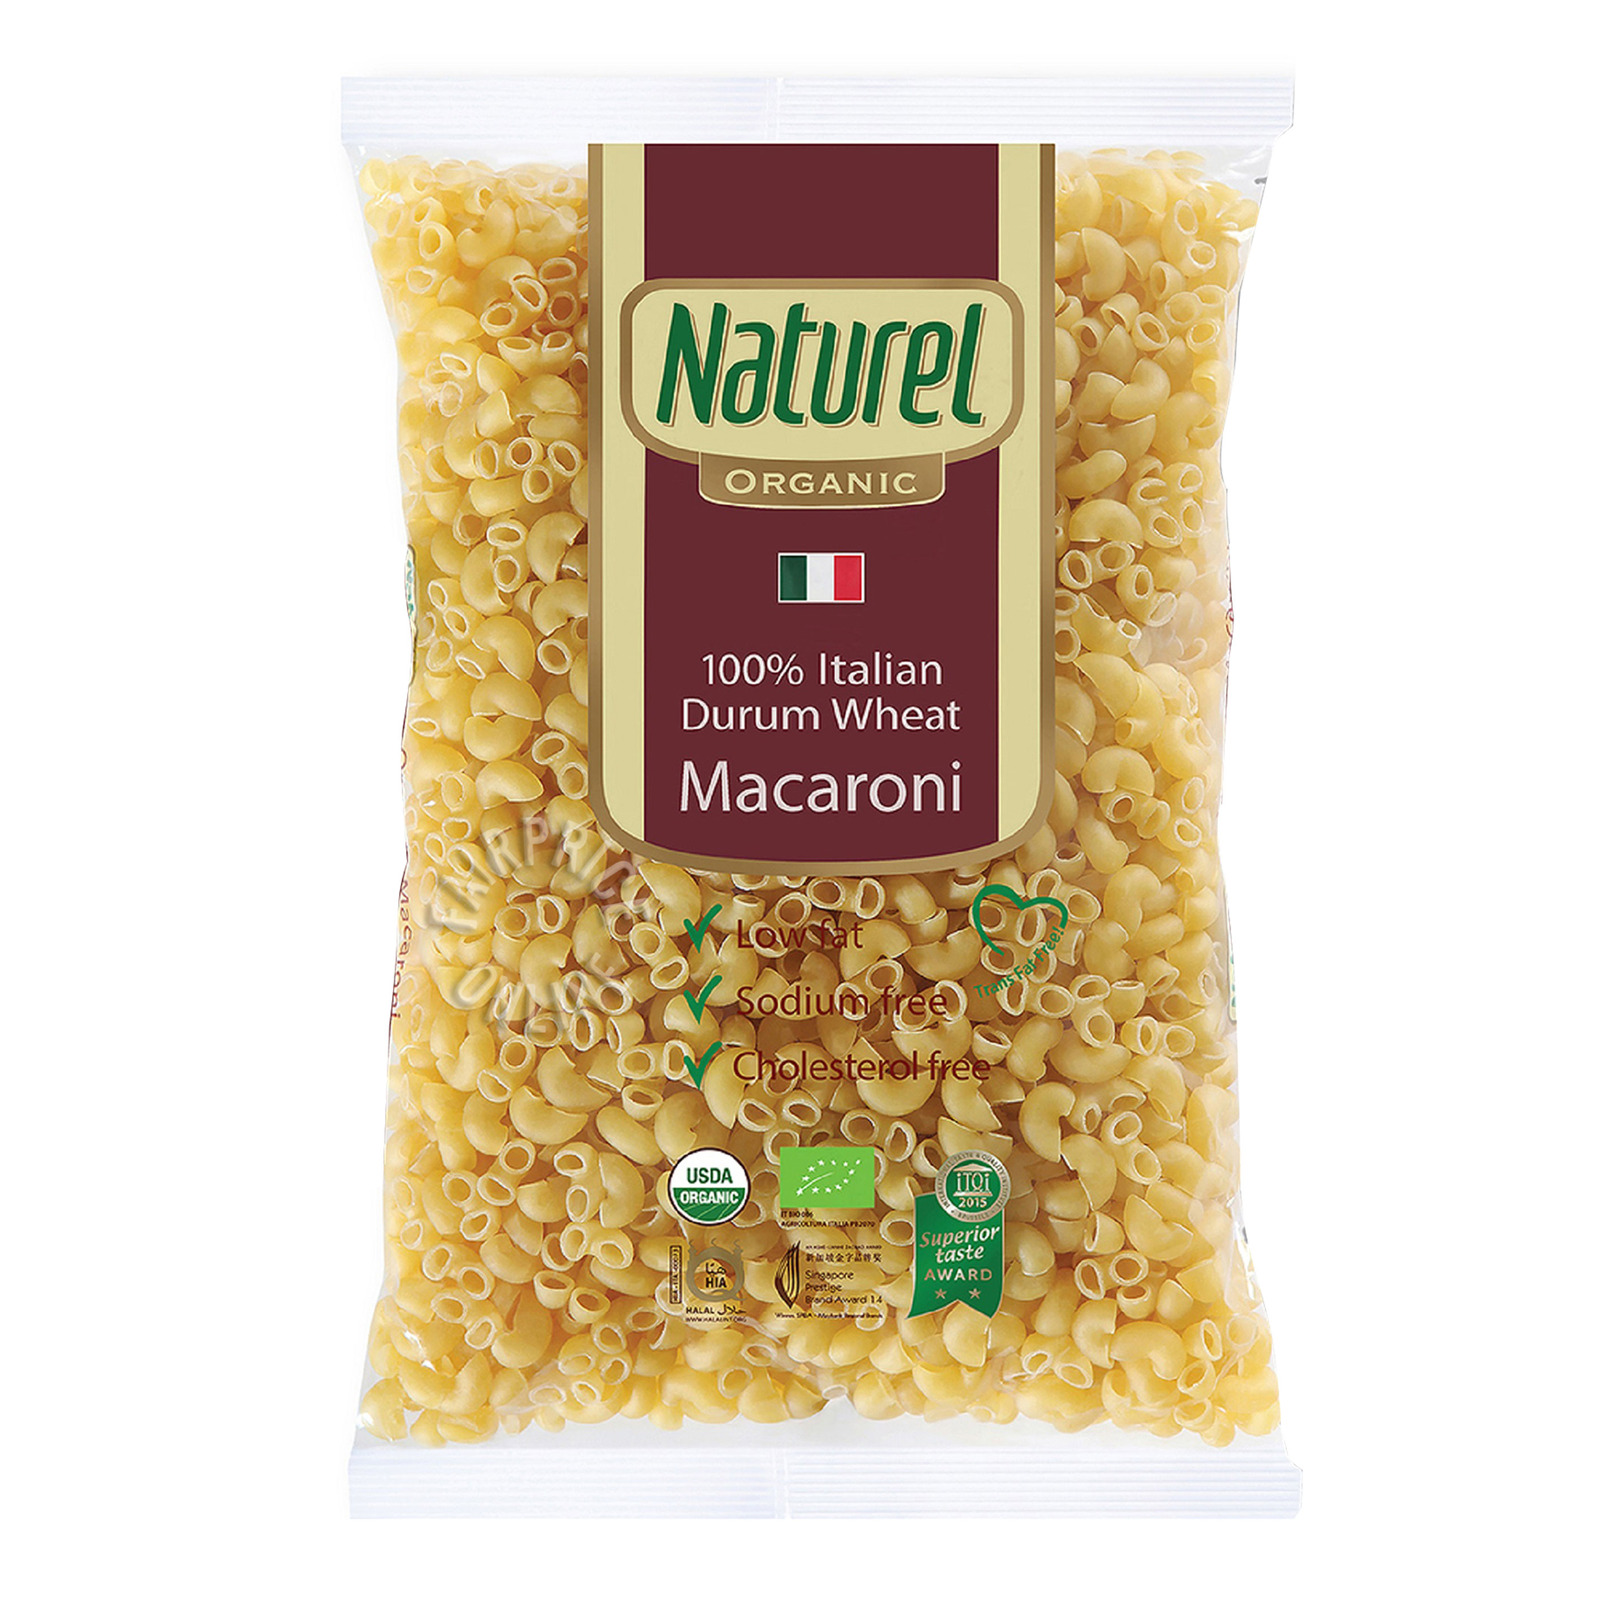 NATUREL Organic Durum Wheat Macaroni 500g